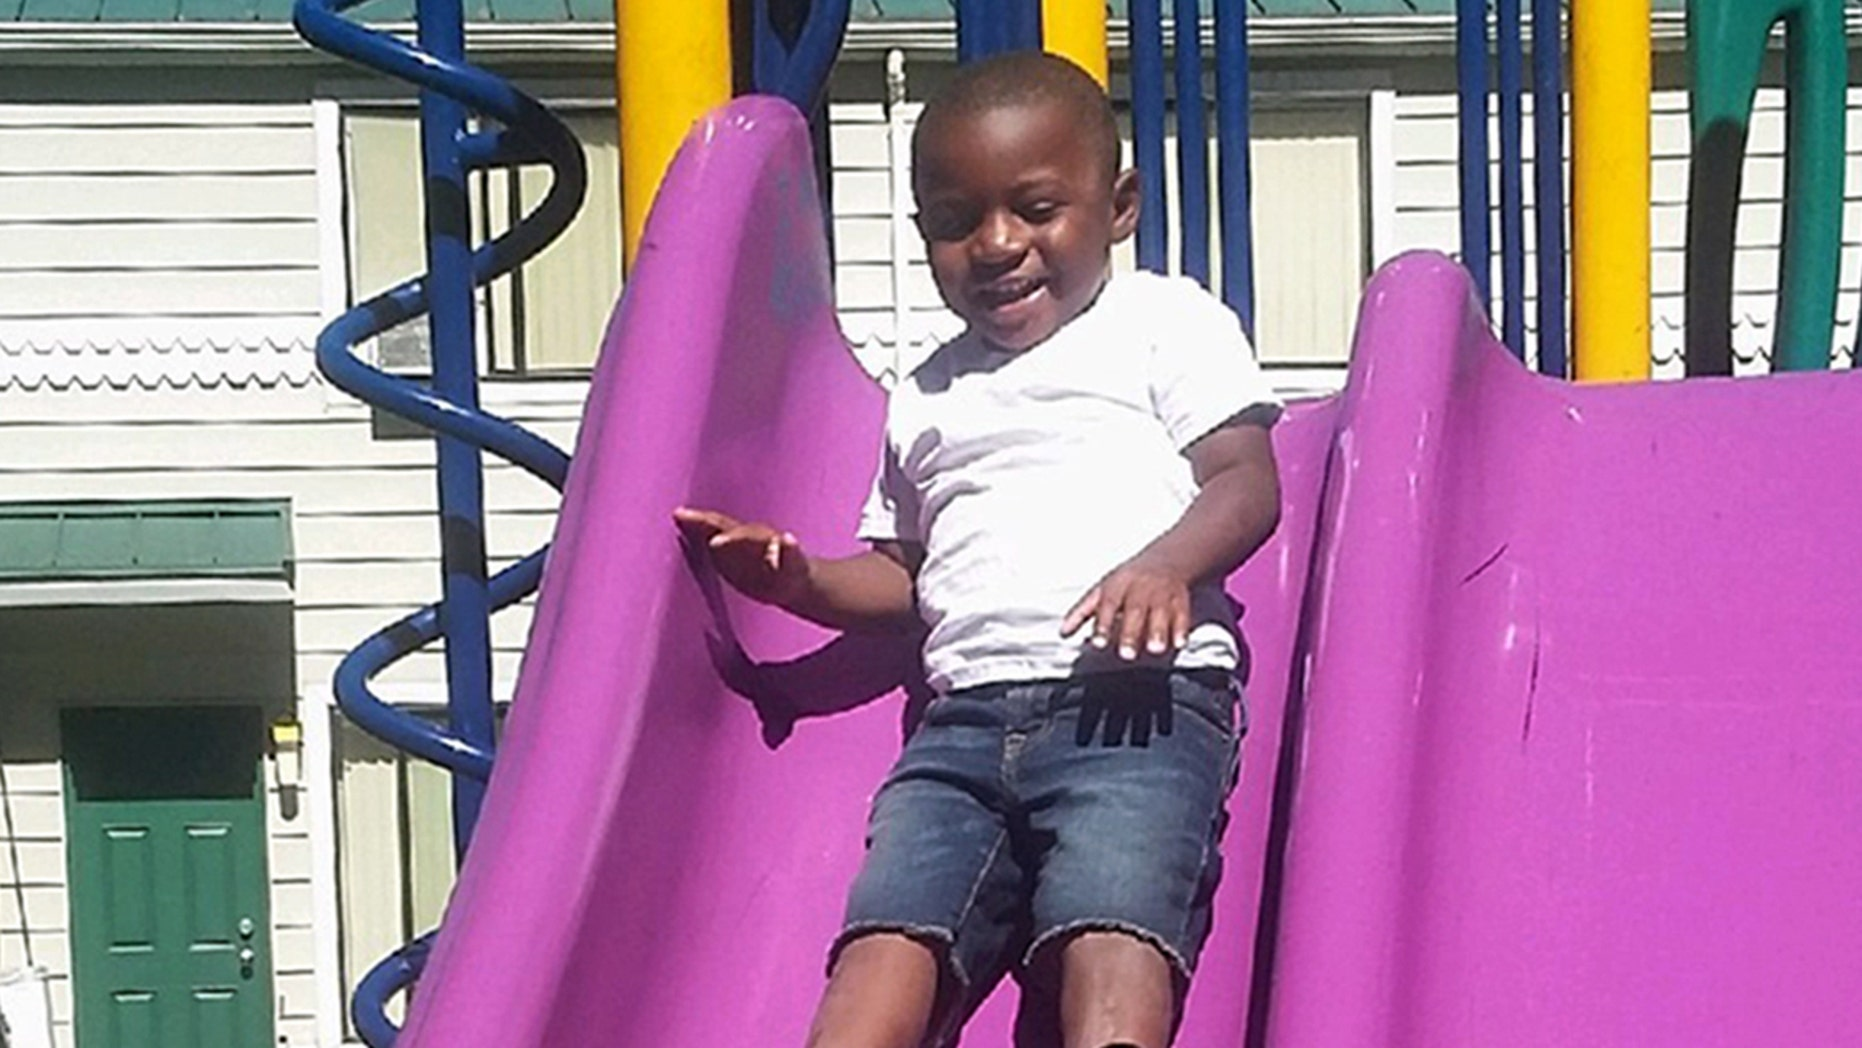 This July 2016 photo provided by Pamela Harris shows Reginald Kendall Harris Jr., playing on a slide at a park in Portland, Ore.